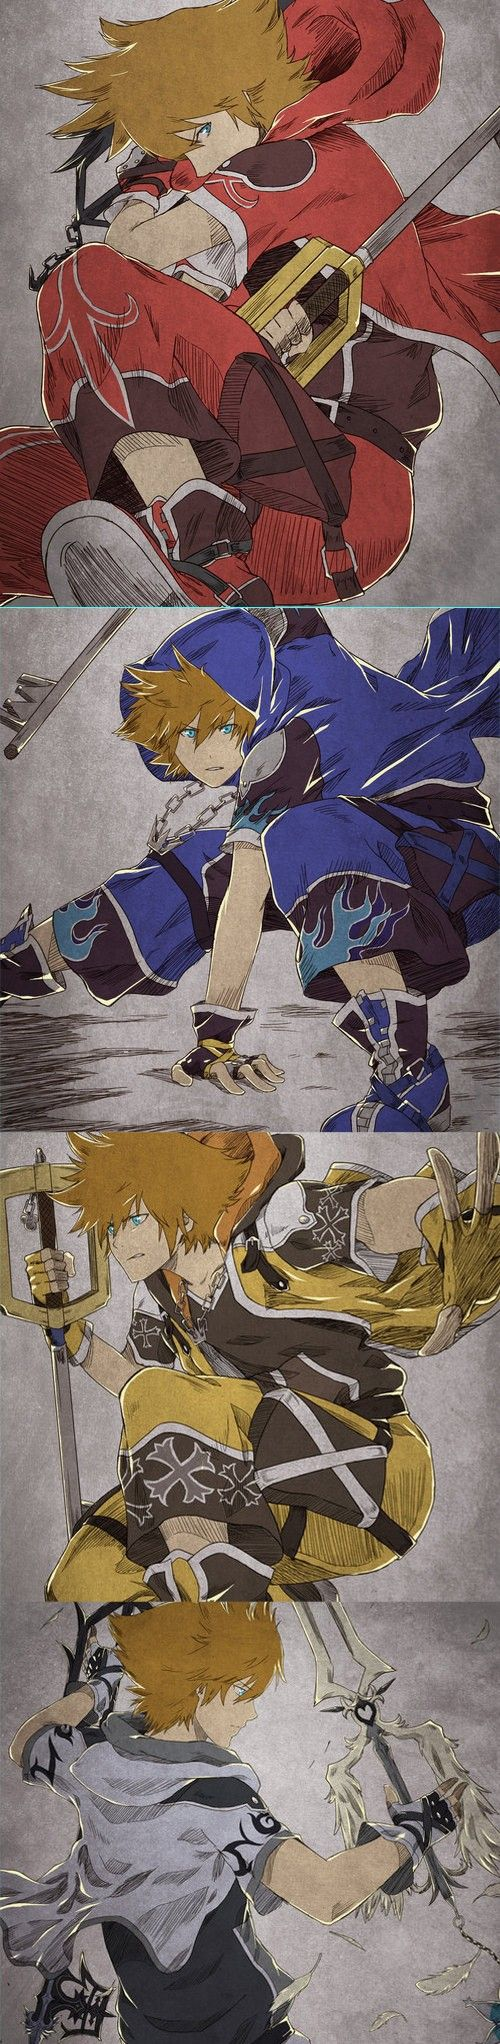 Tumblr || KingdomKeySora: Kingdom Hearts Sora Fanart by MRLIPSCHUTZ